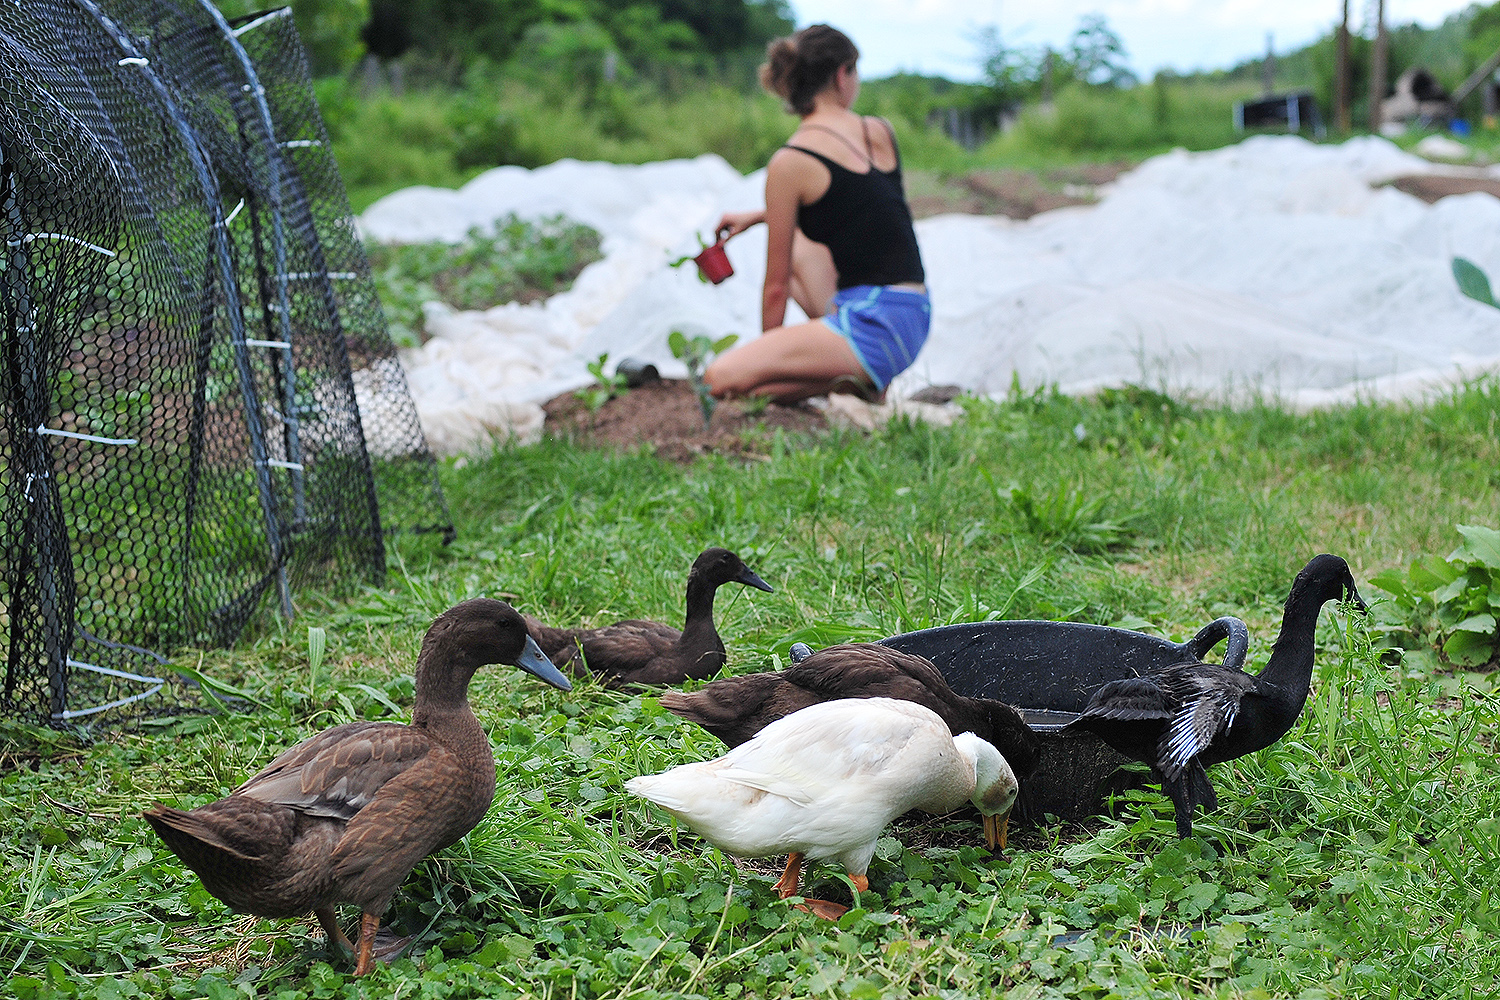 Domesticated ducks keep the farmers company while they're in the field.